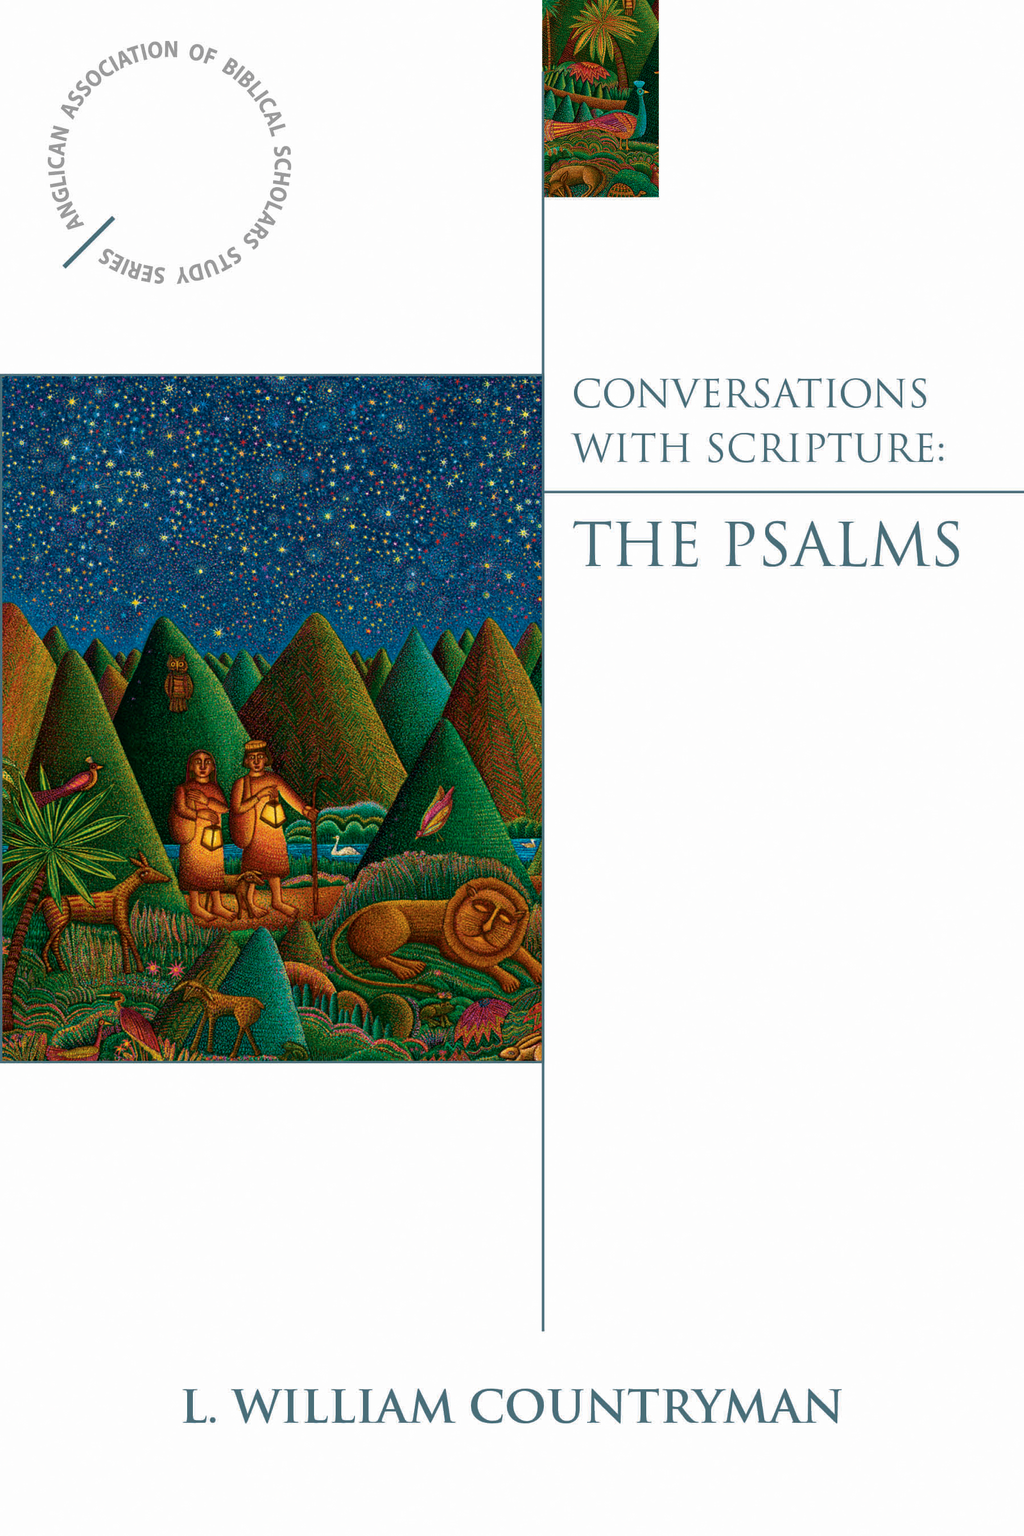 Conversations with Scripture: The Psalms By: L. William Countryman